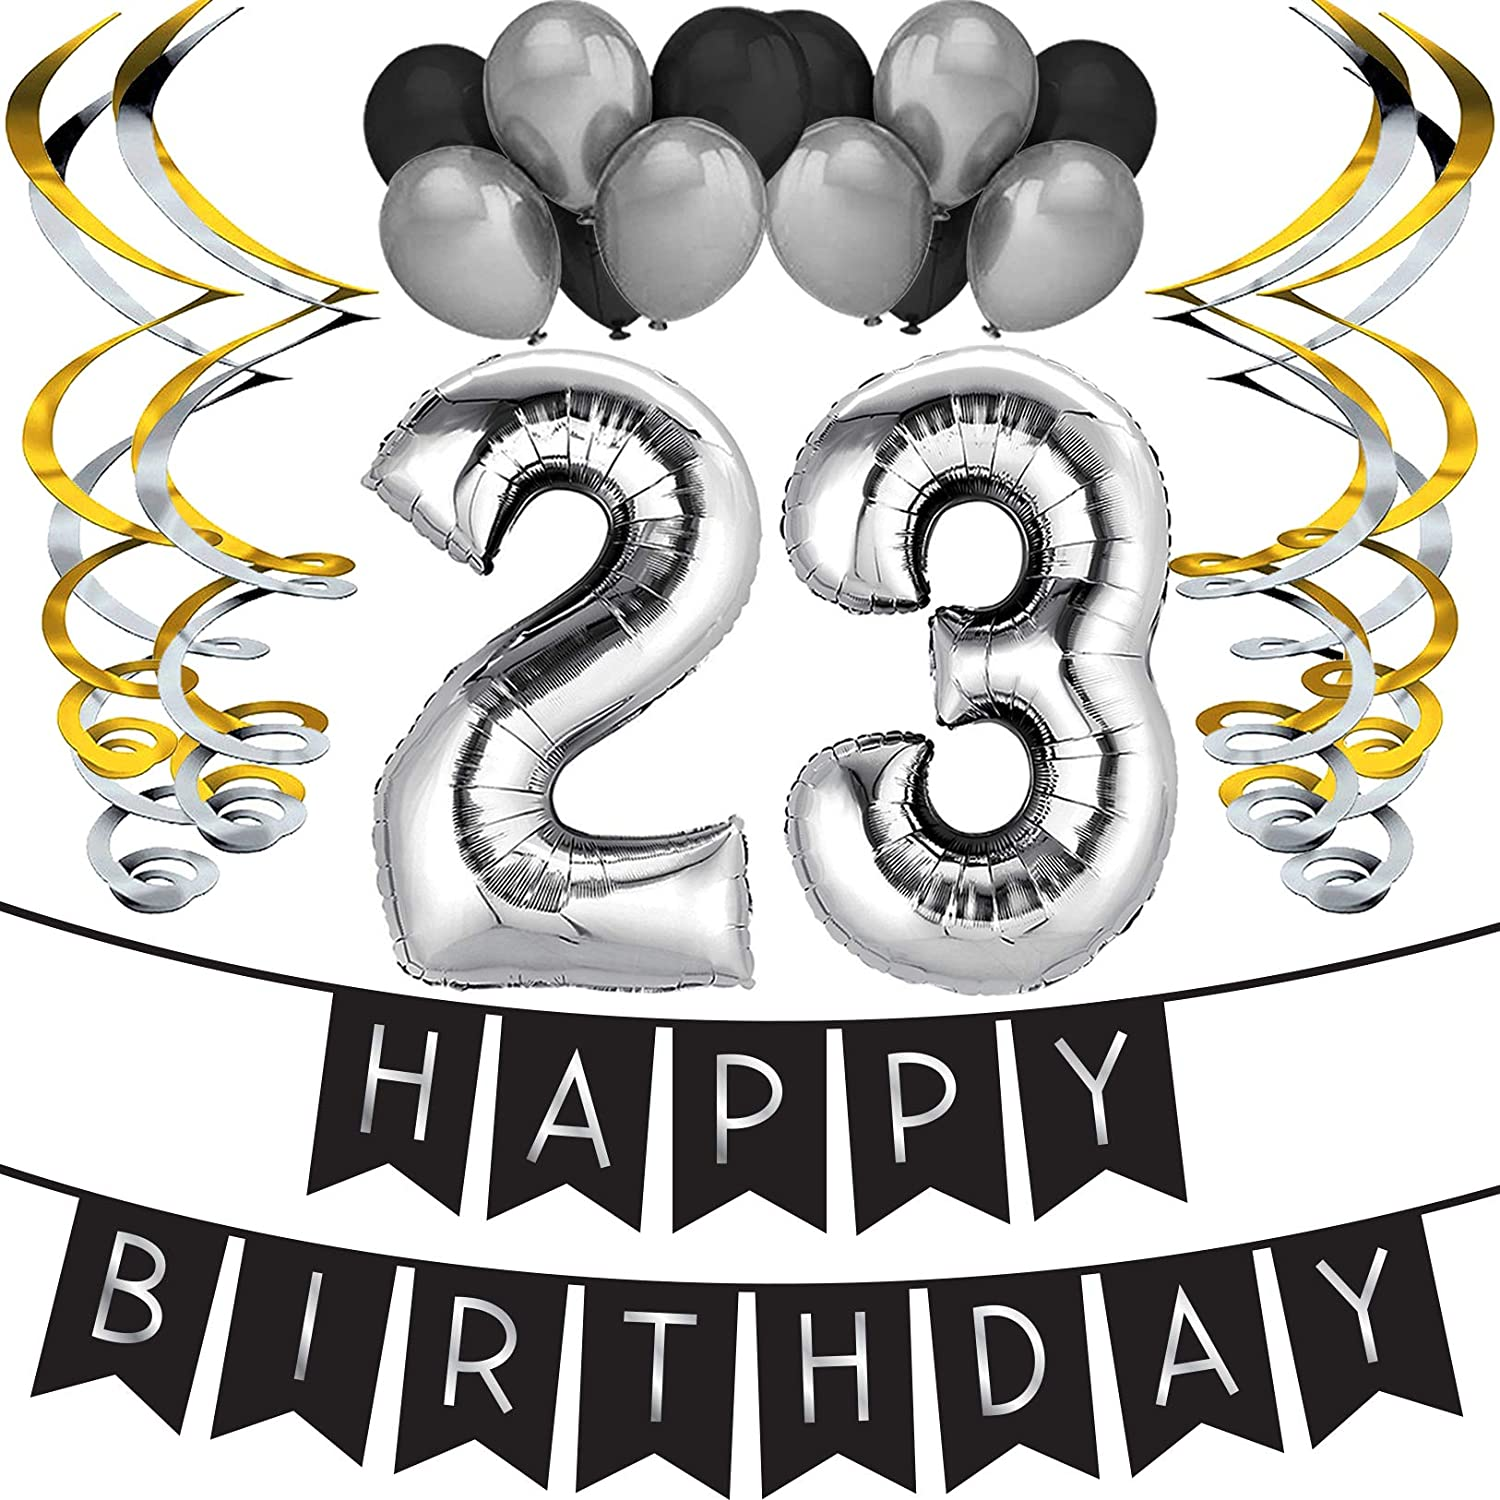 23rd Birthday Party Pack - Black & Silver Happy Birthday Bunting, Balloon, and Swirls Pack- Birthday Decorations - 23rd Birthday Party Supplies